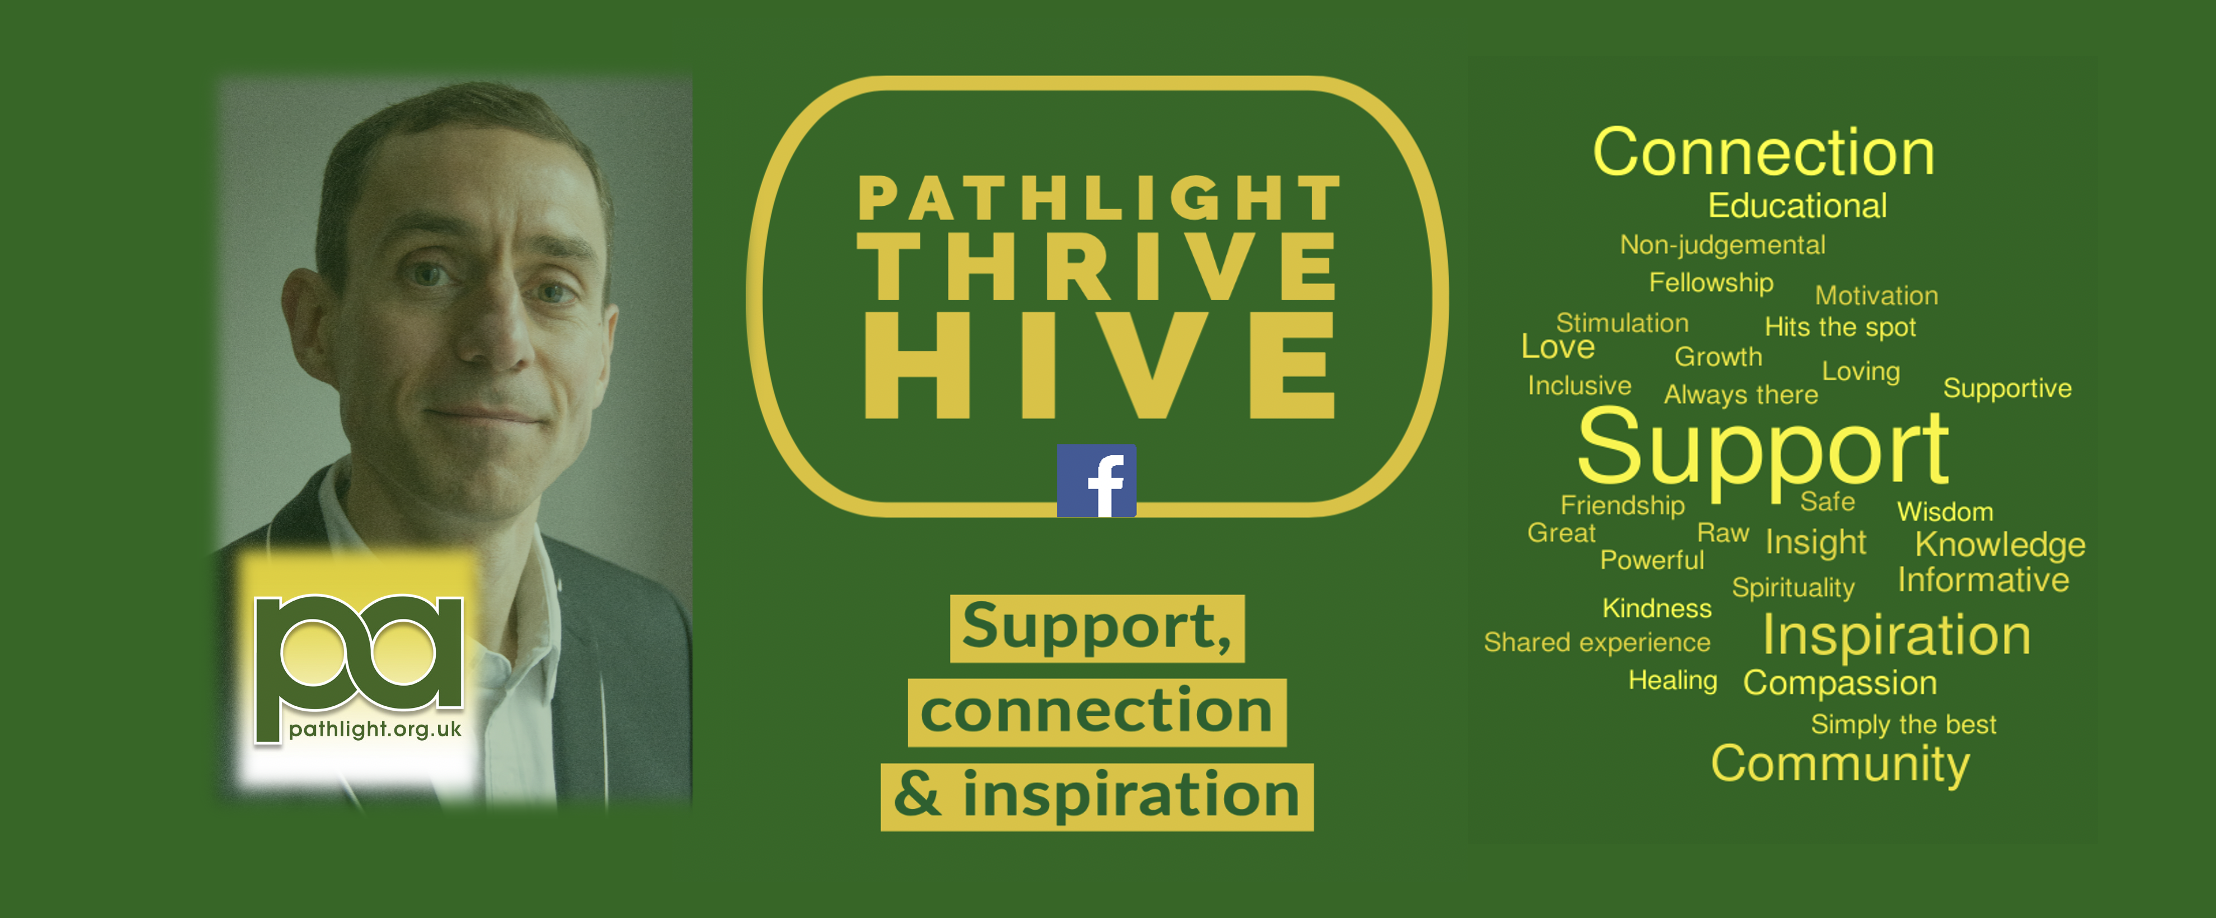 Pathlight Thrive Hive